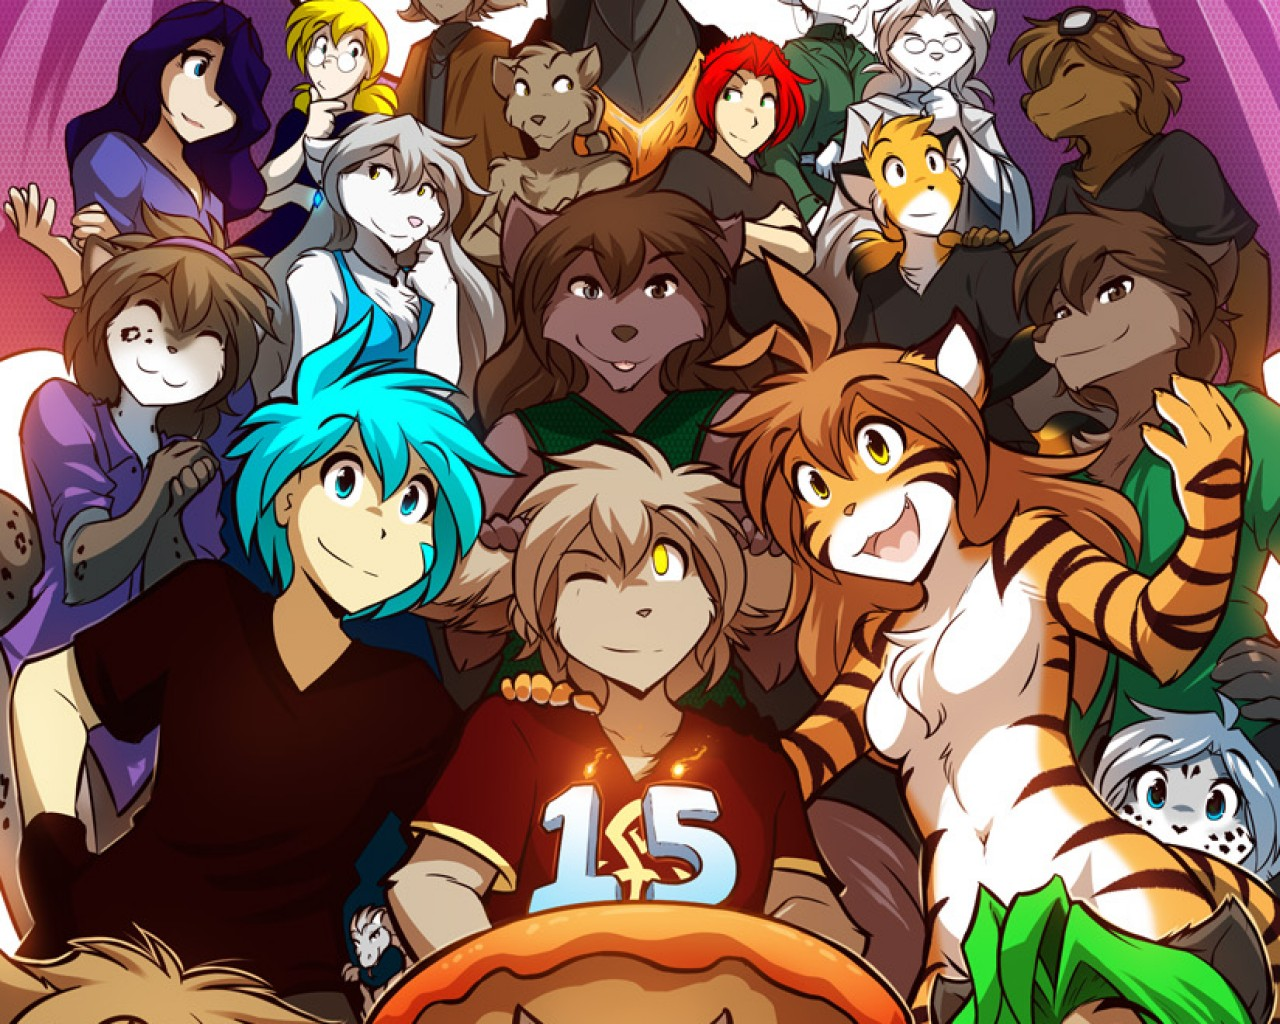 Poster Image for TwoKinds